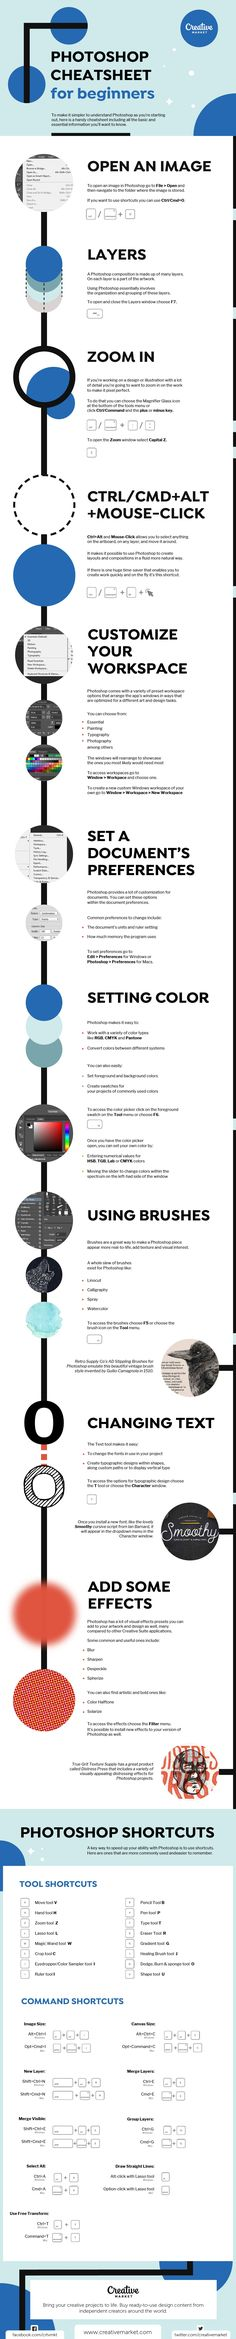 Photoshop Cheatsheet for Beginners